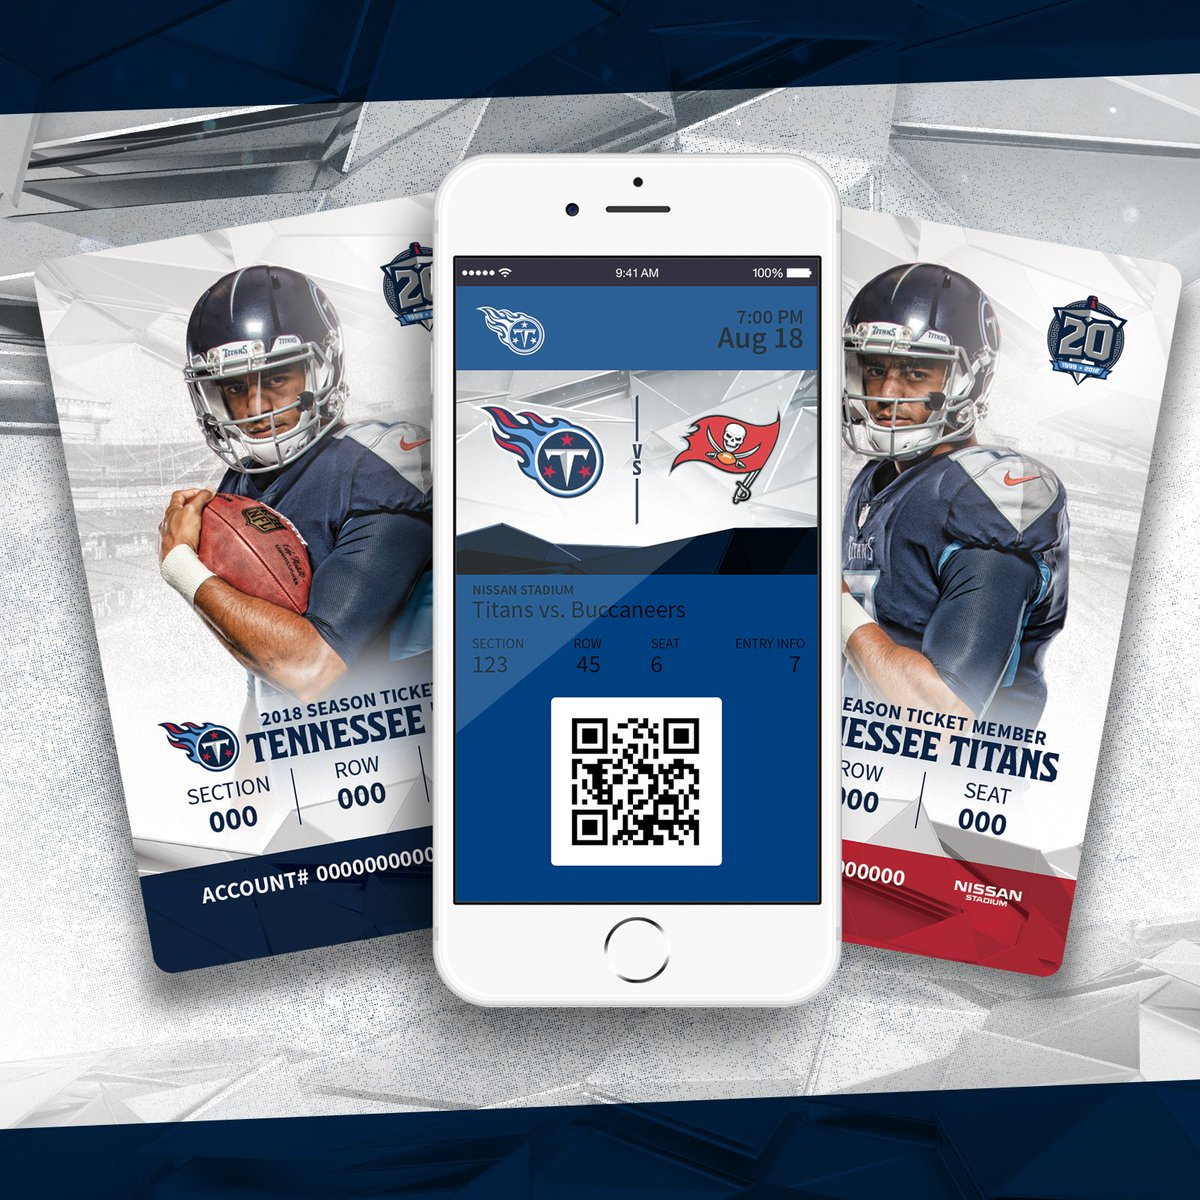 Tennessee Titans on Twitter: Your phone is your ticket into games